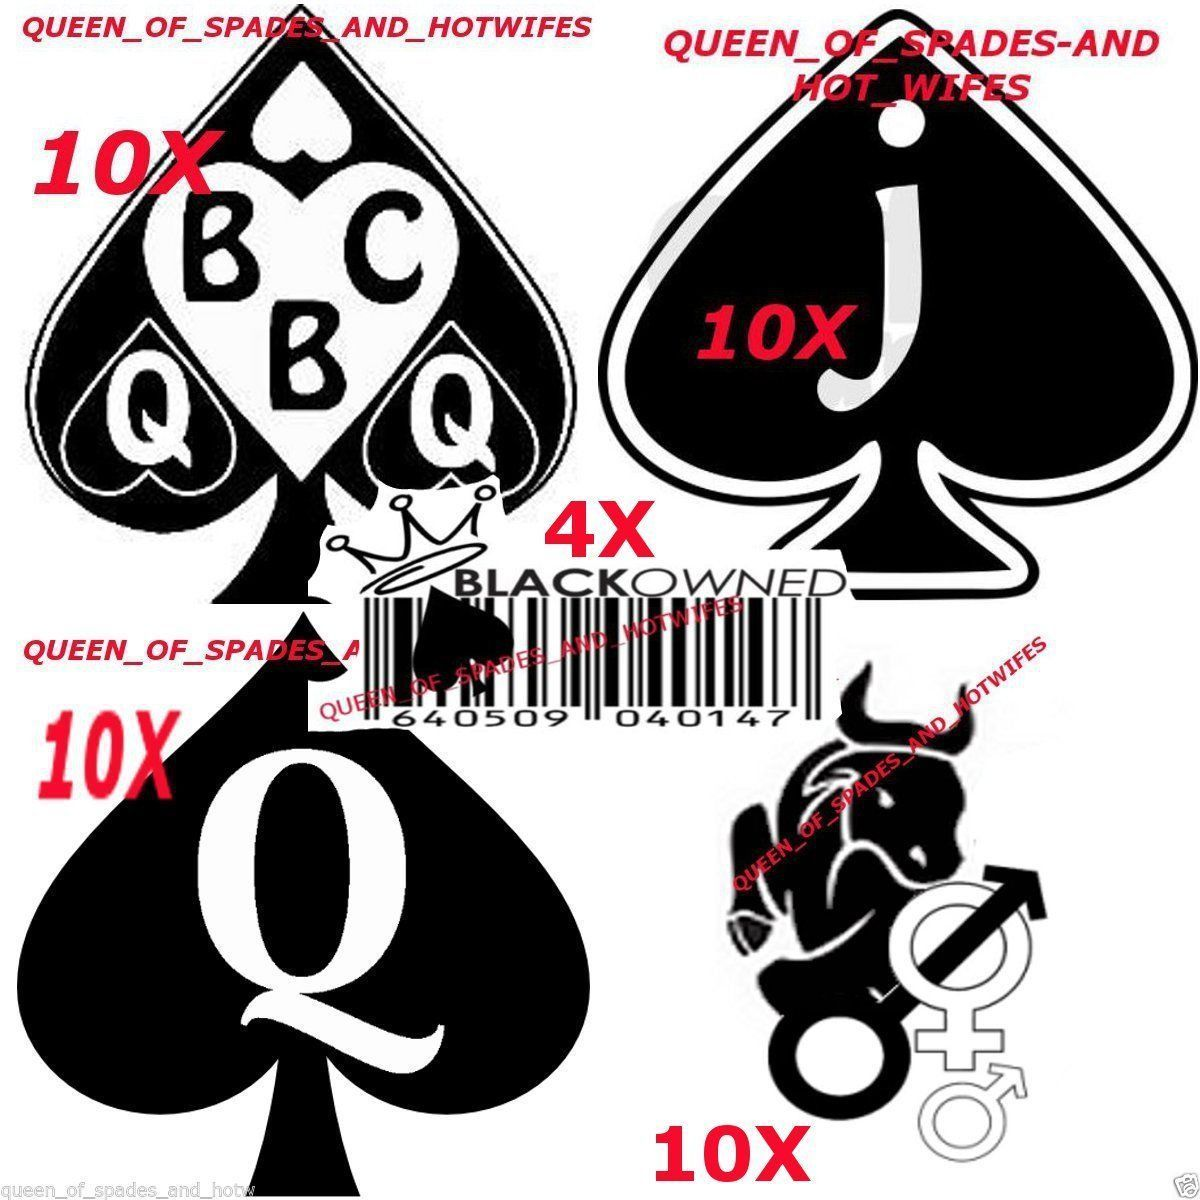 44pc Bbc J Queen Of Spade Swinger Black Owned Hot Temporary Tattoo Fetish